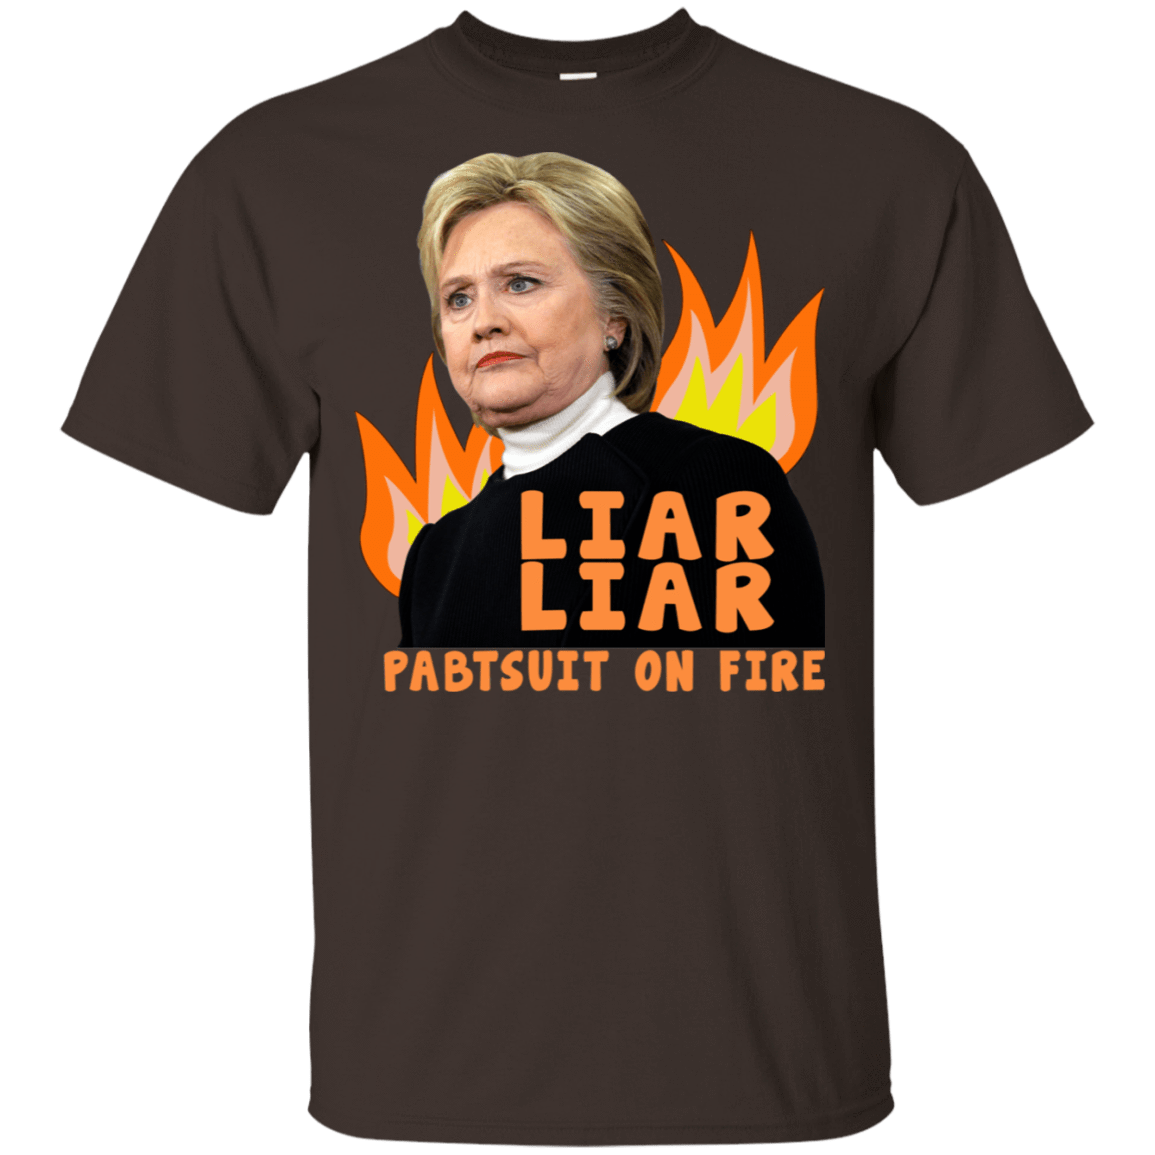 Hillary Clinton: Liar Liar Pantsuit On Fire 22-2283-74096011-12087 - Tee Ript